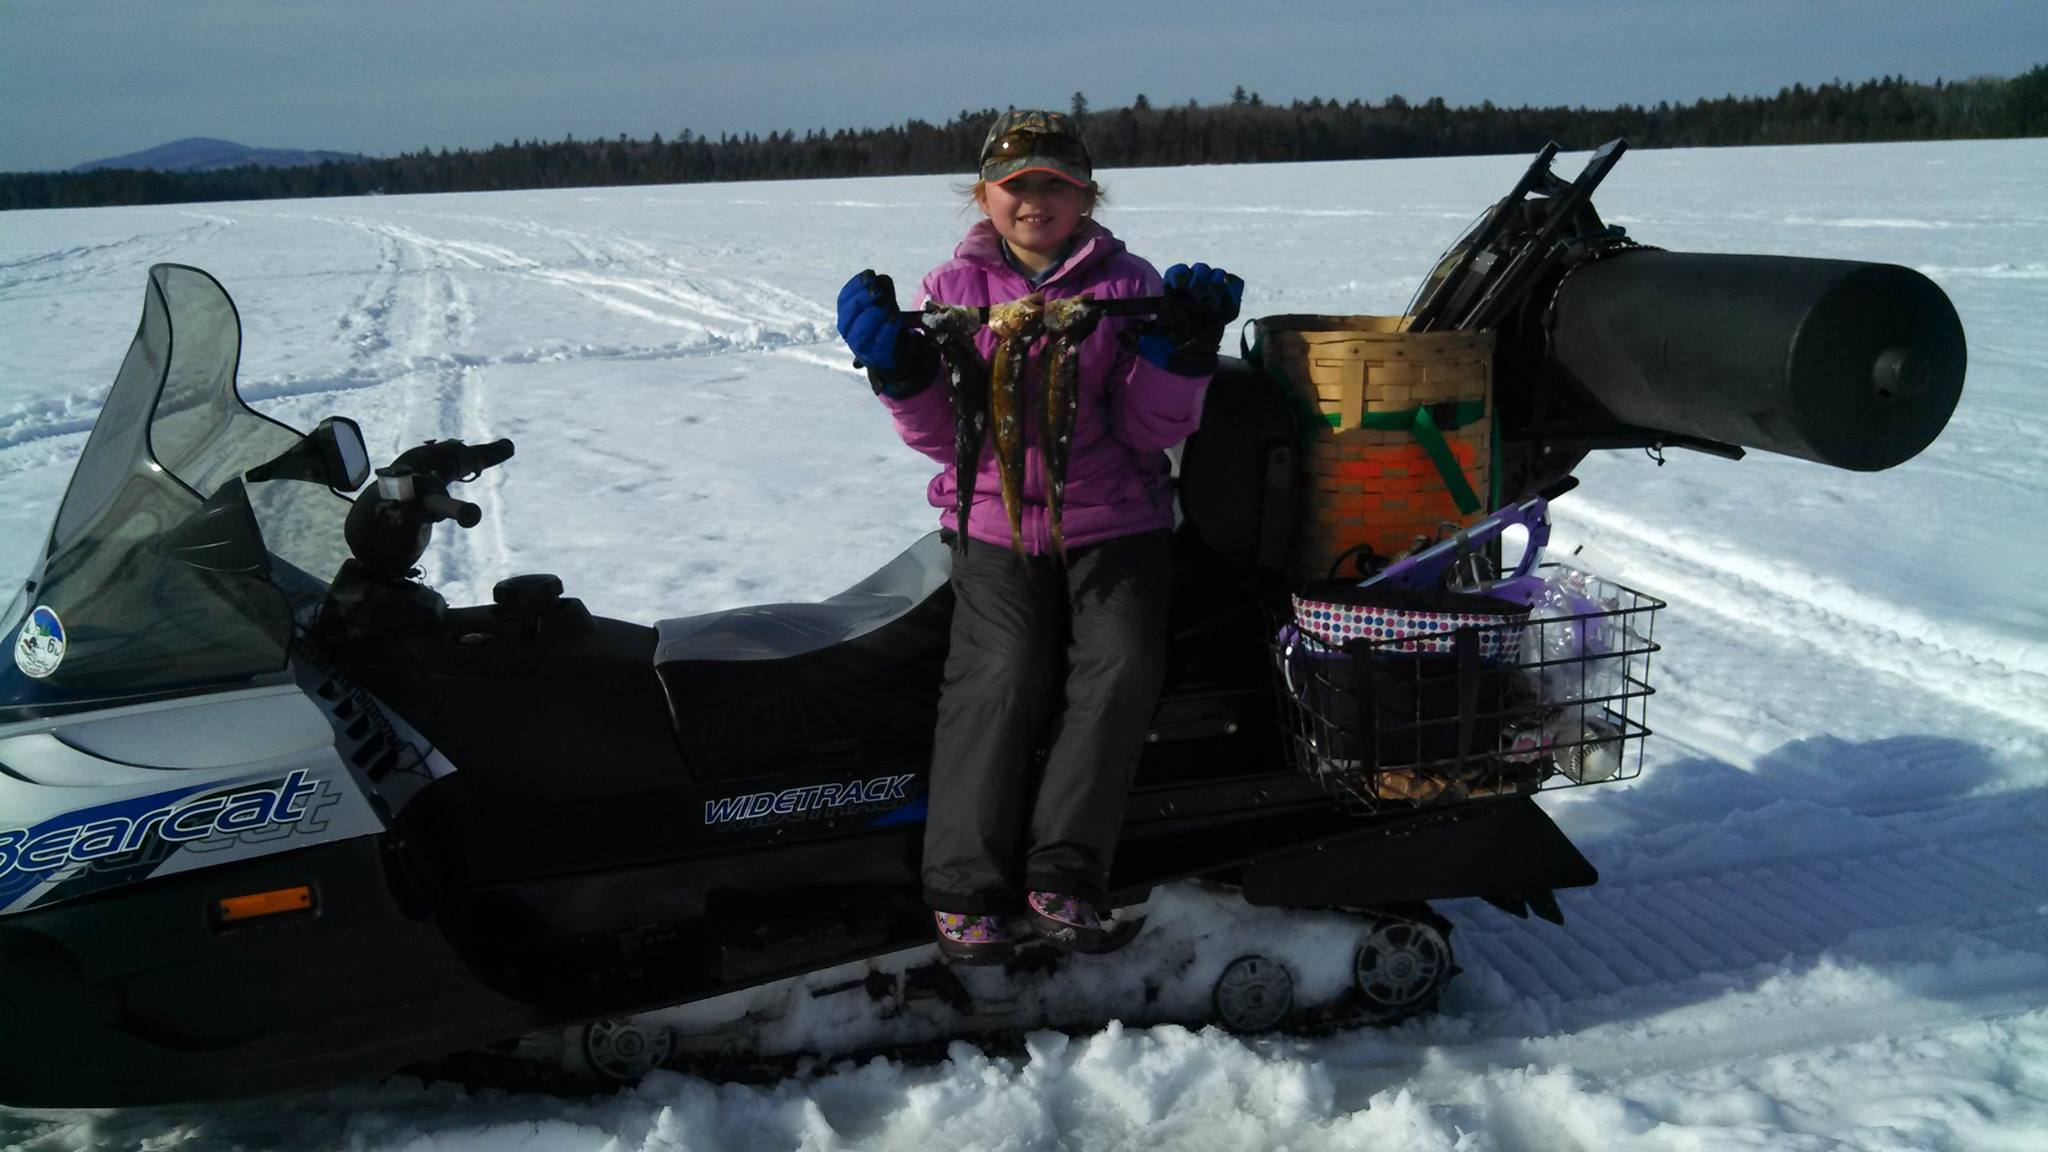 Maine s ice fishing tradition the basics of ice fishing for New ice fishing gear 2017